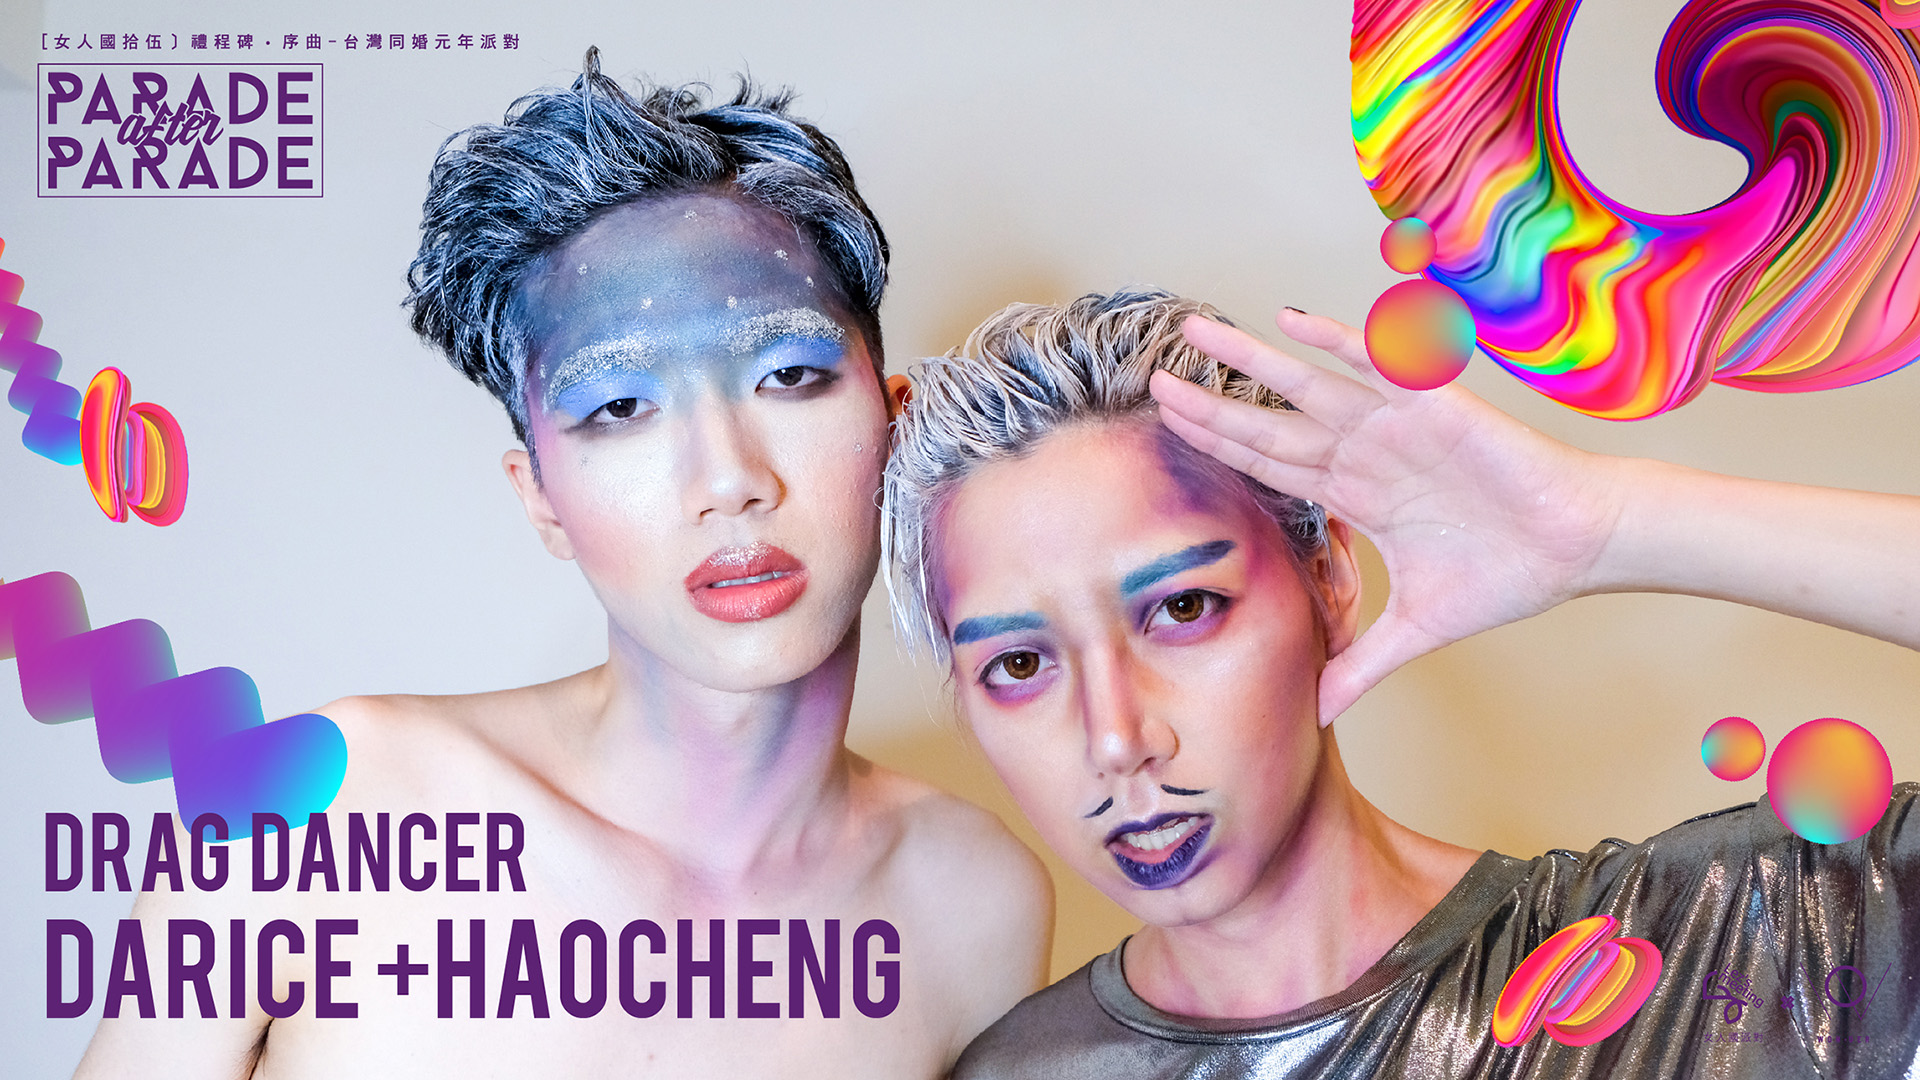 2019 Taiwan Gay Pride After Party  〔Lez's Meeting女人國 X Wonder Bar〕PARADE after PARADE